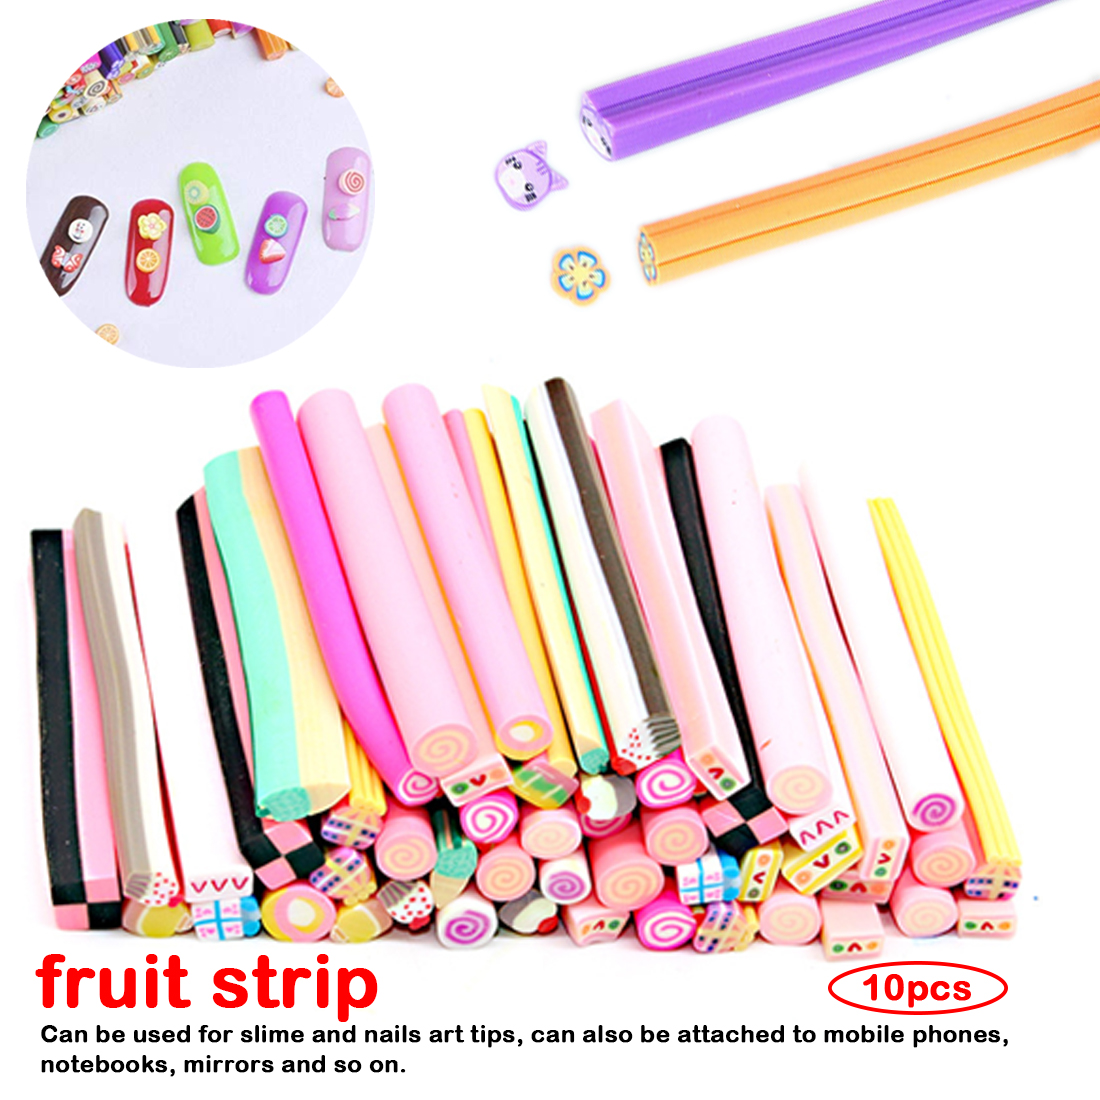 10pcs/Set Fruit Slices For Slime Supplies Nails Art Tips Clay Artificial Fruit Slices Sticks Slimes Toys DIY